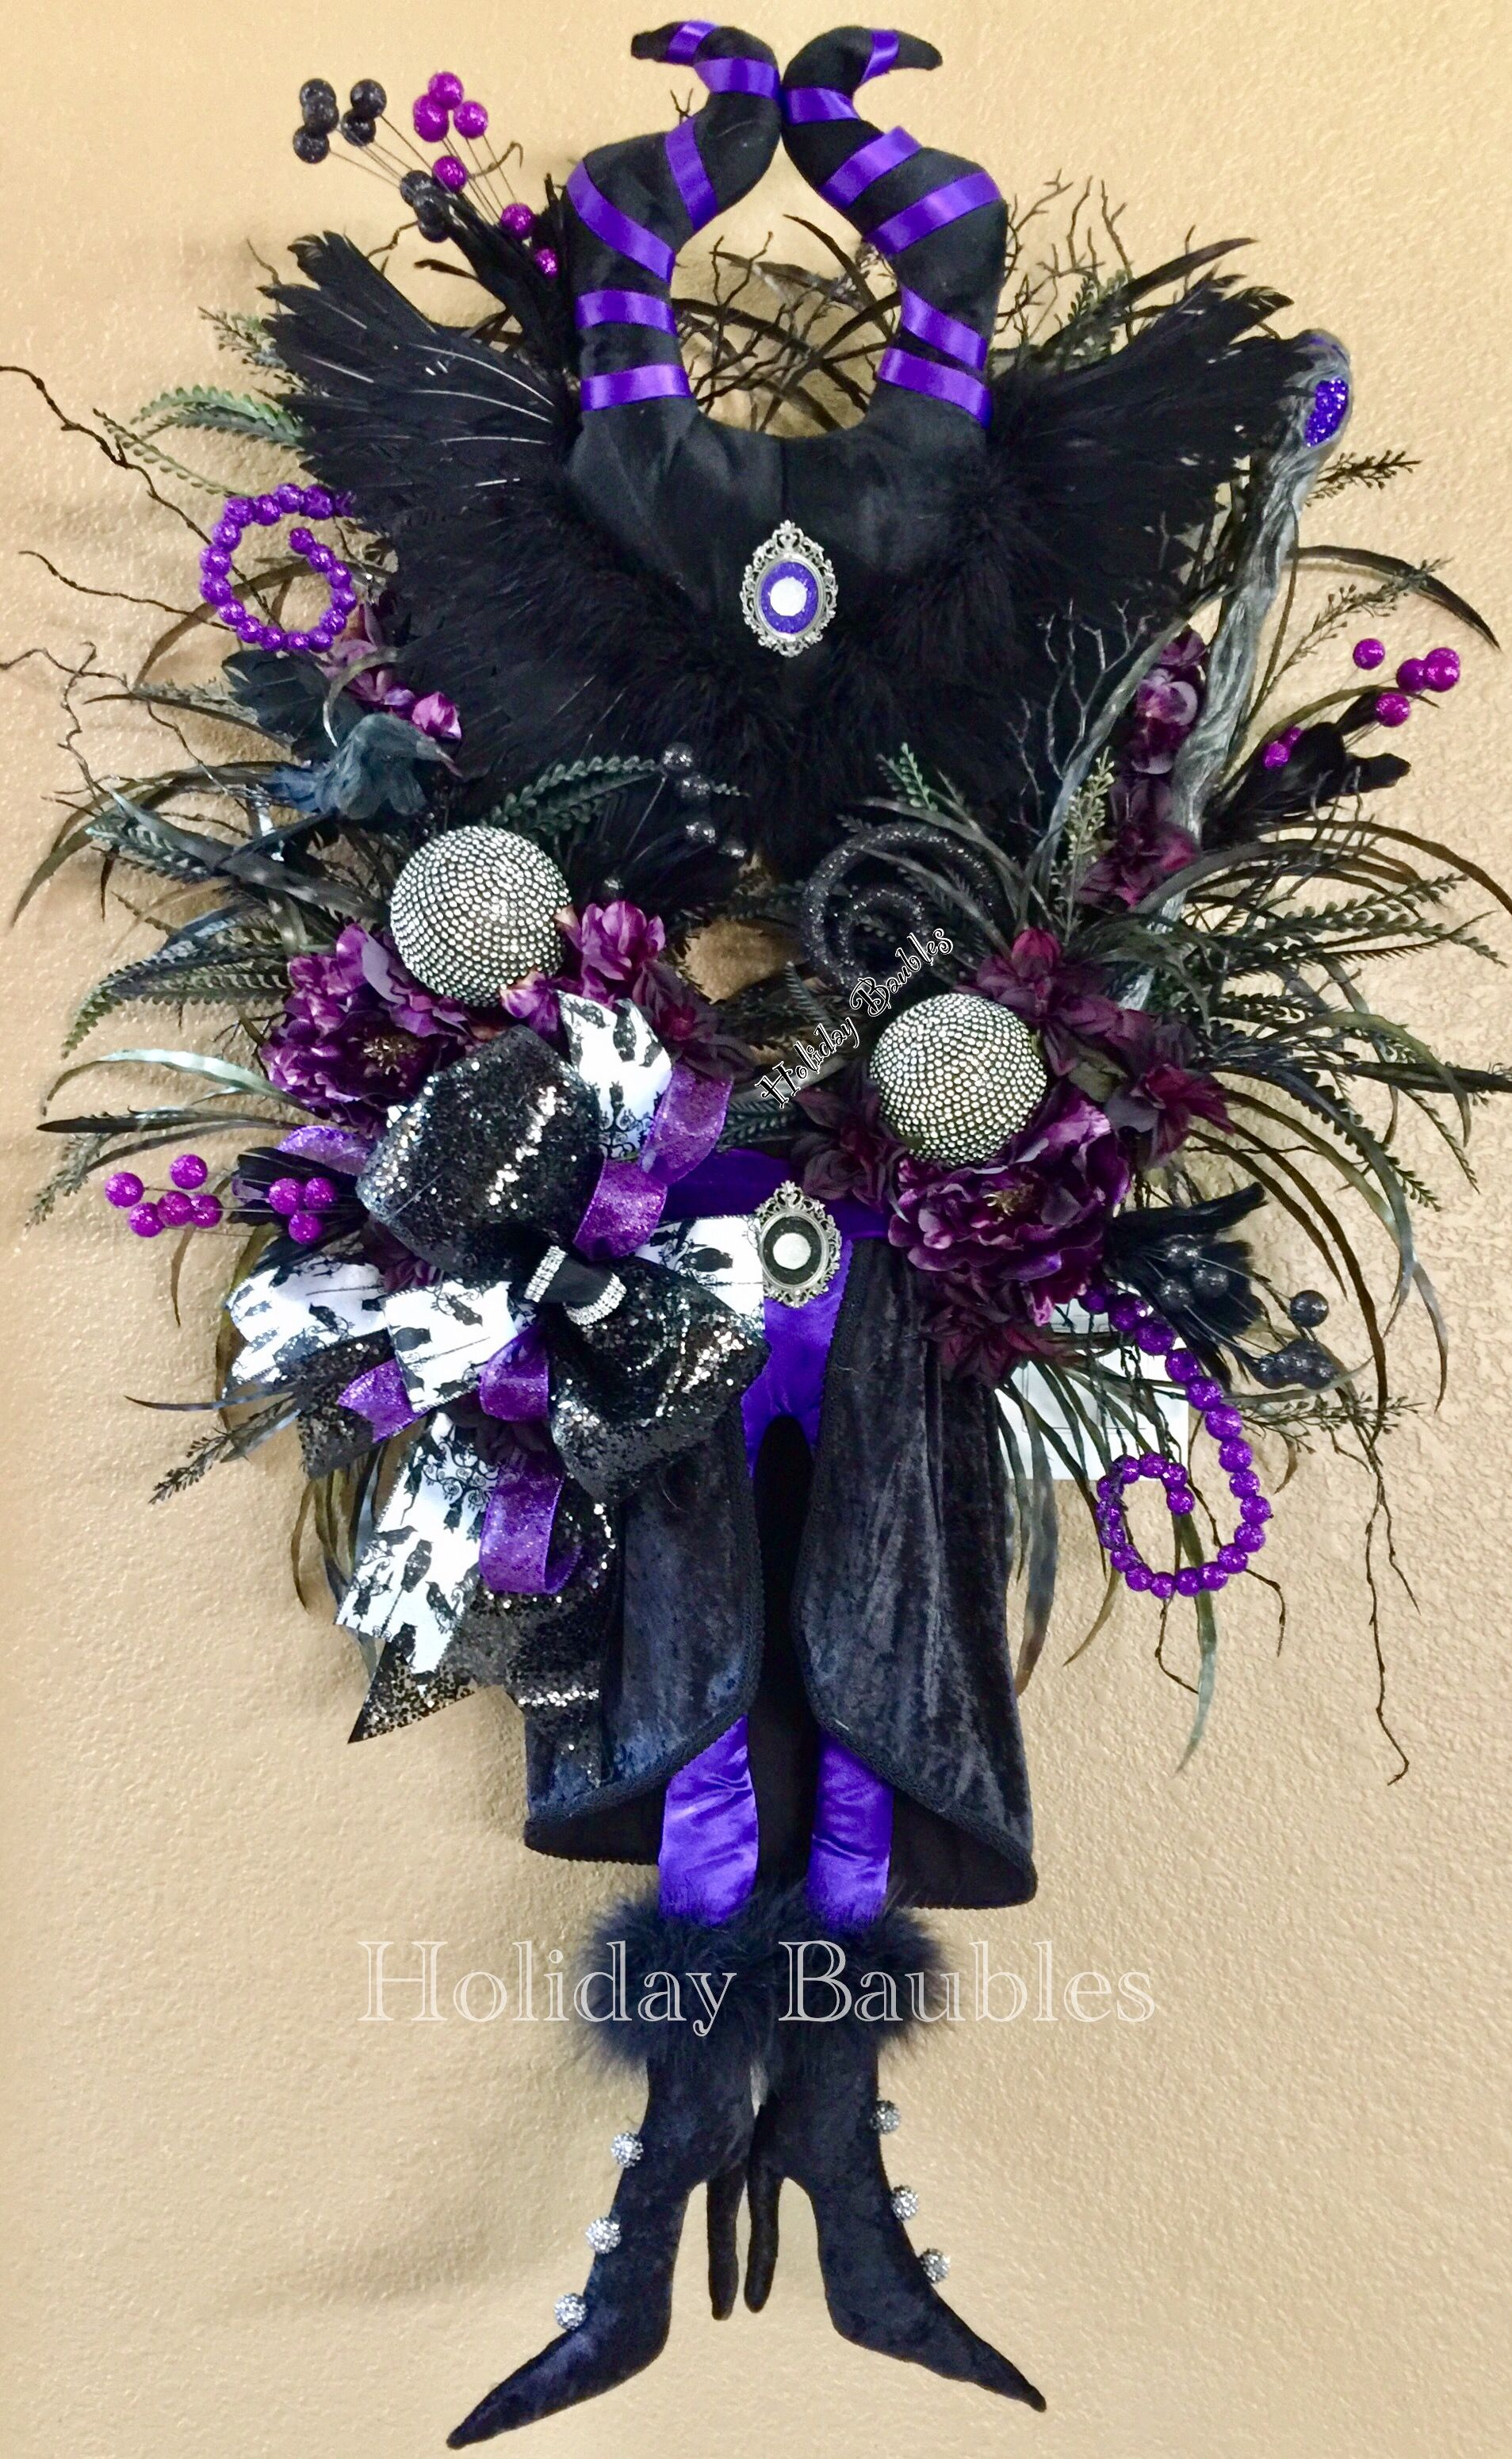 Maleficent Black Beauty by Holiday Baubles (With images